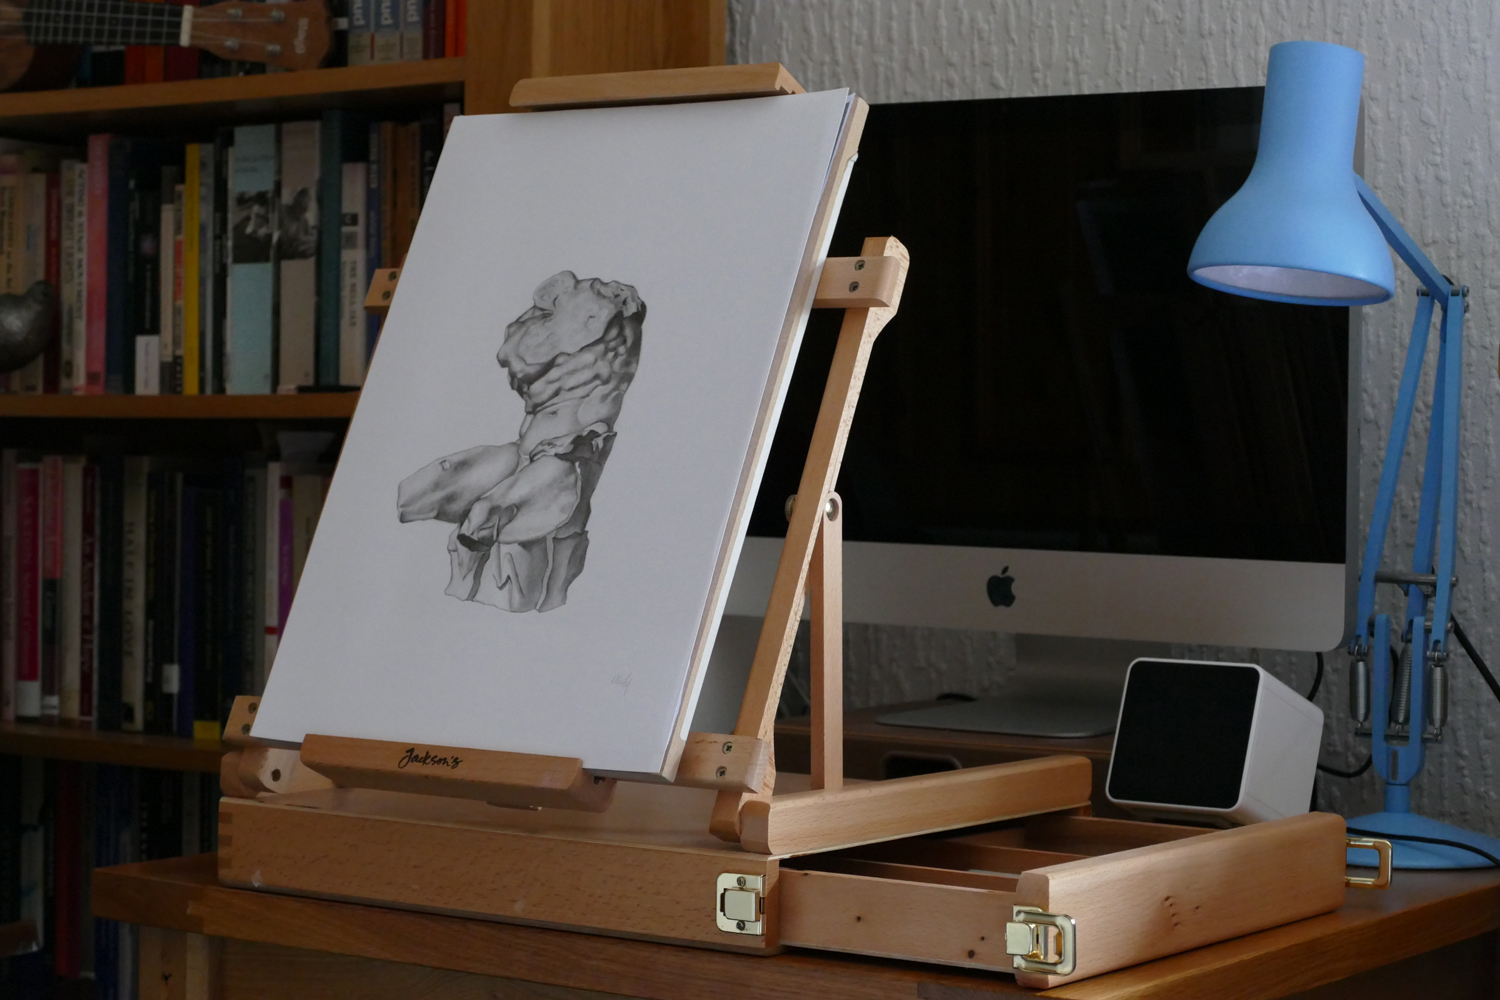 Jackson's Wentworth Table Easel in use sketching at home 'studio'